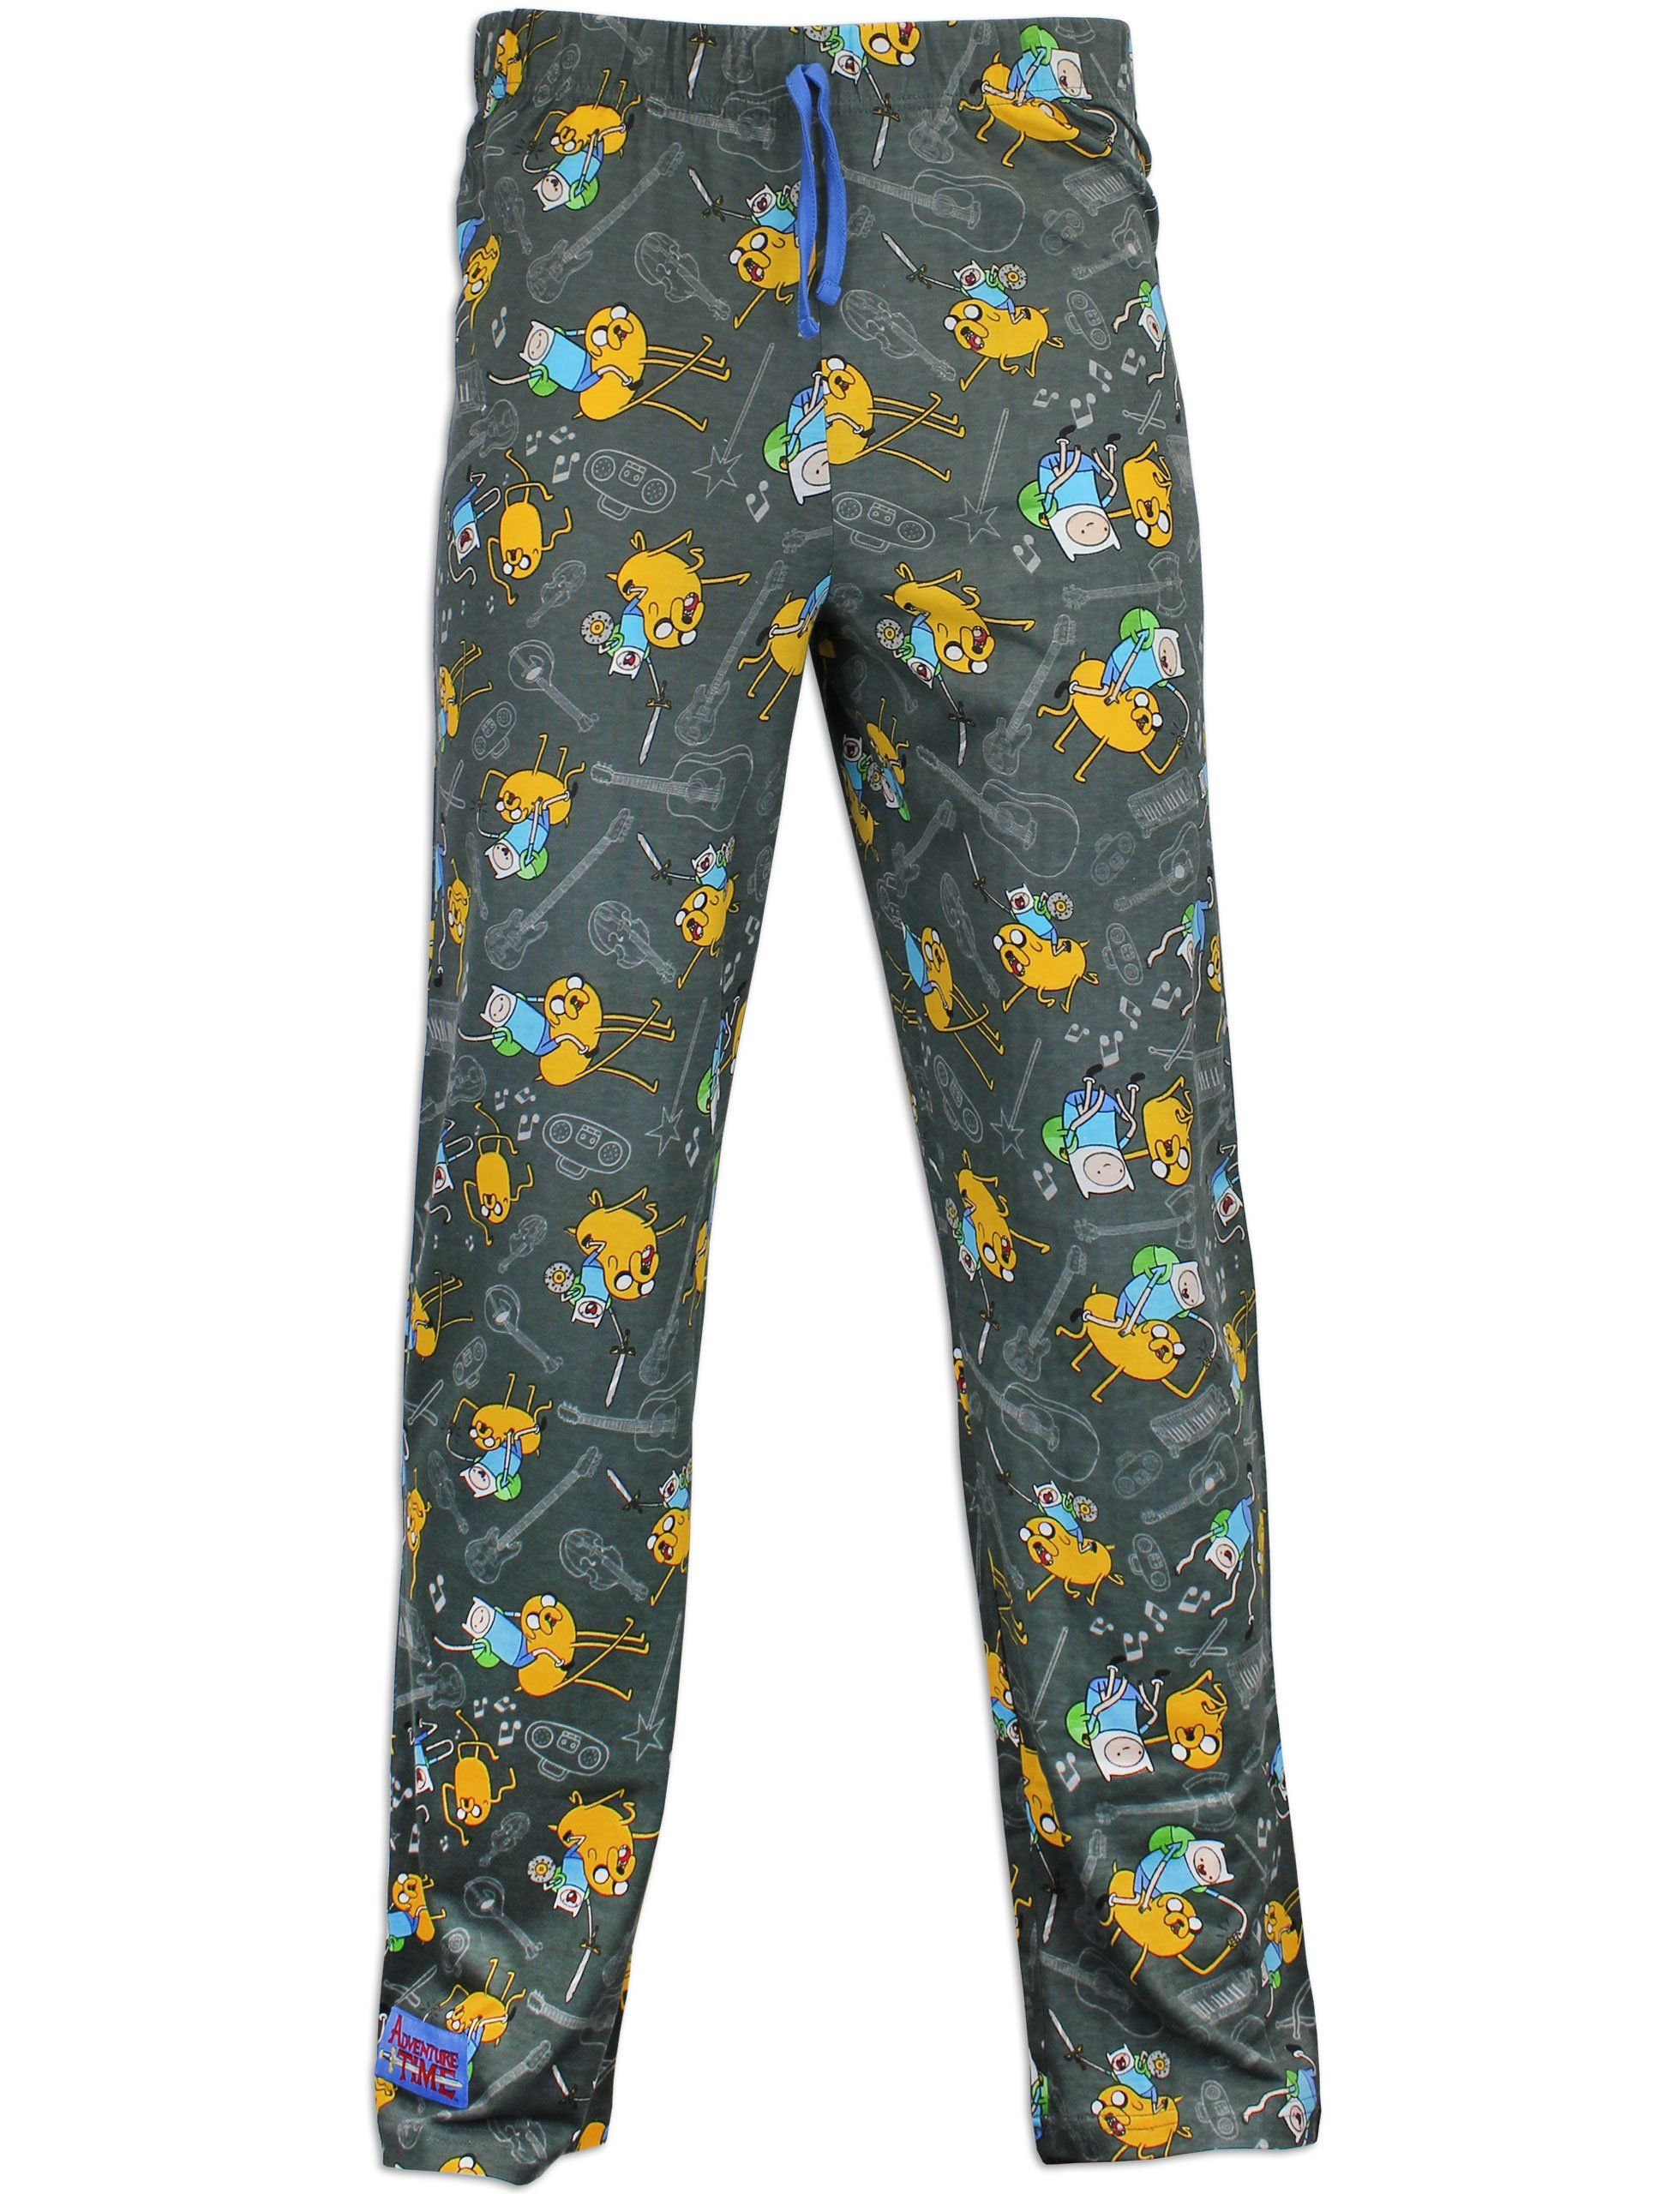 a1b1defbc Character Mens Adventure Time Lounge Pants Size Small | PYJAMAS ...